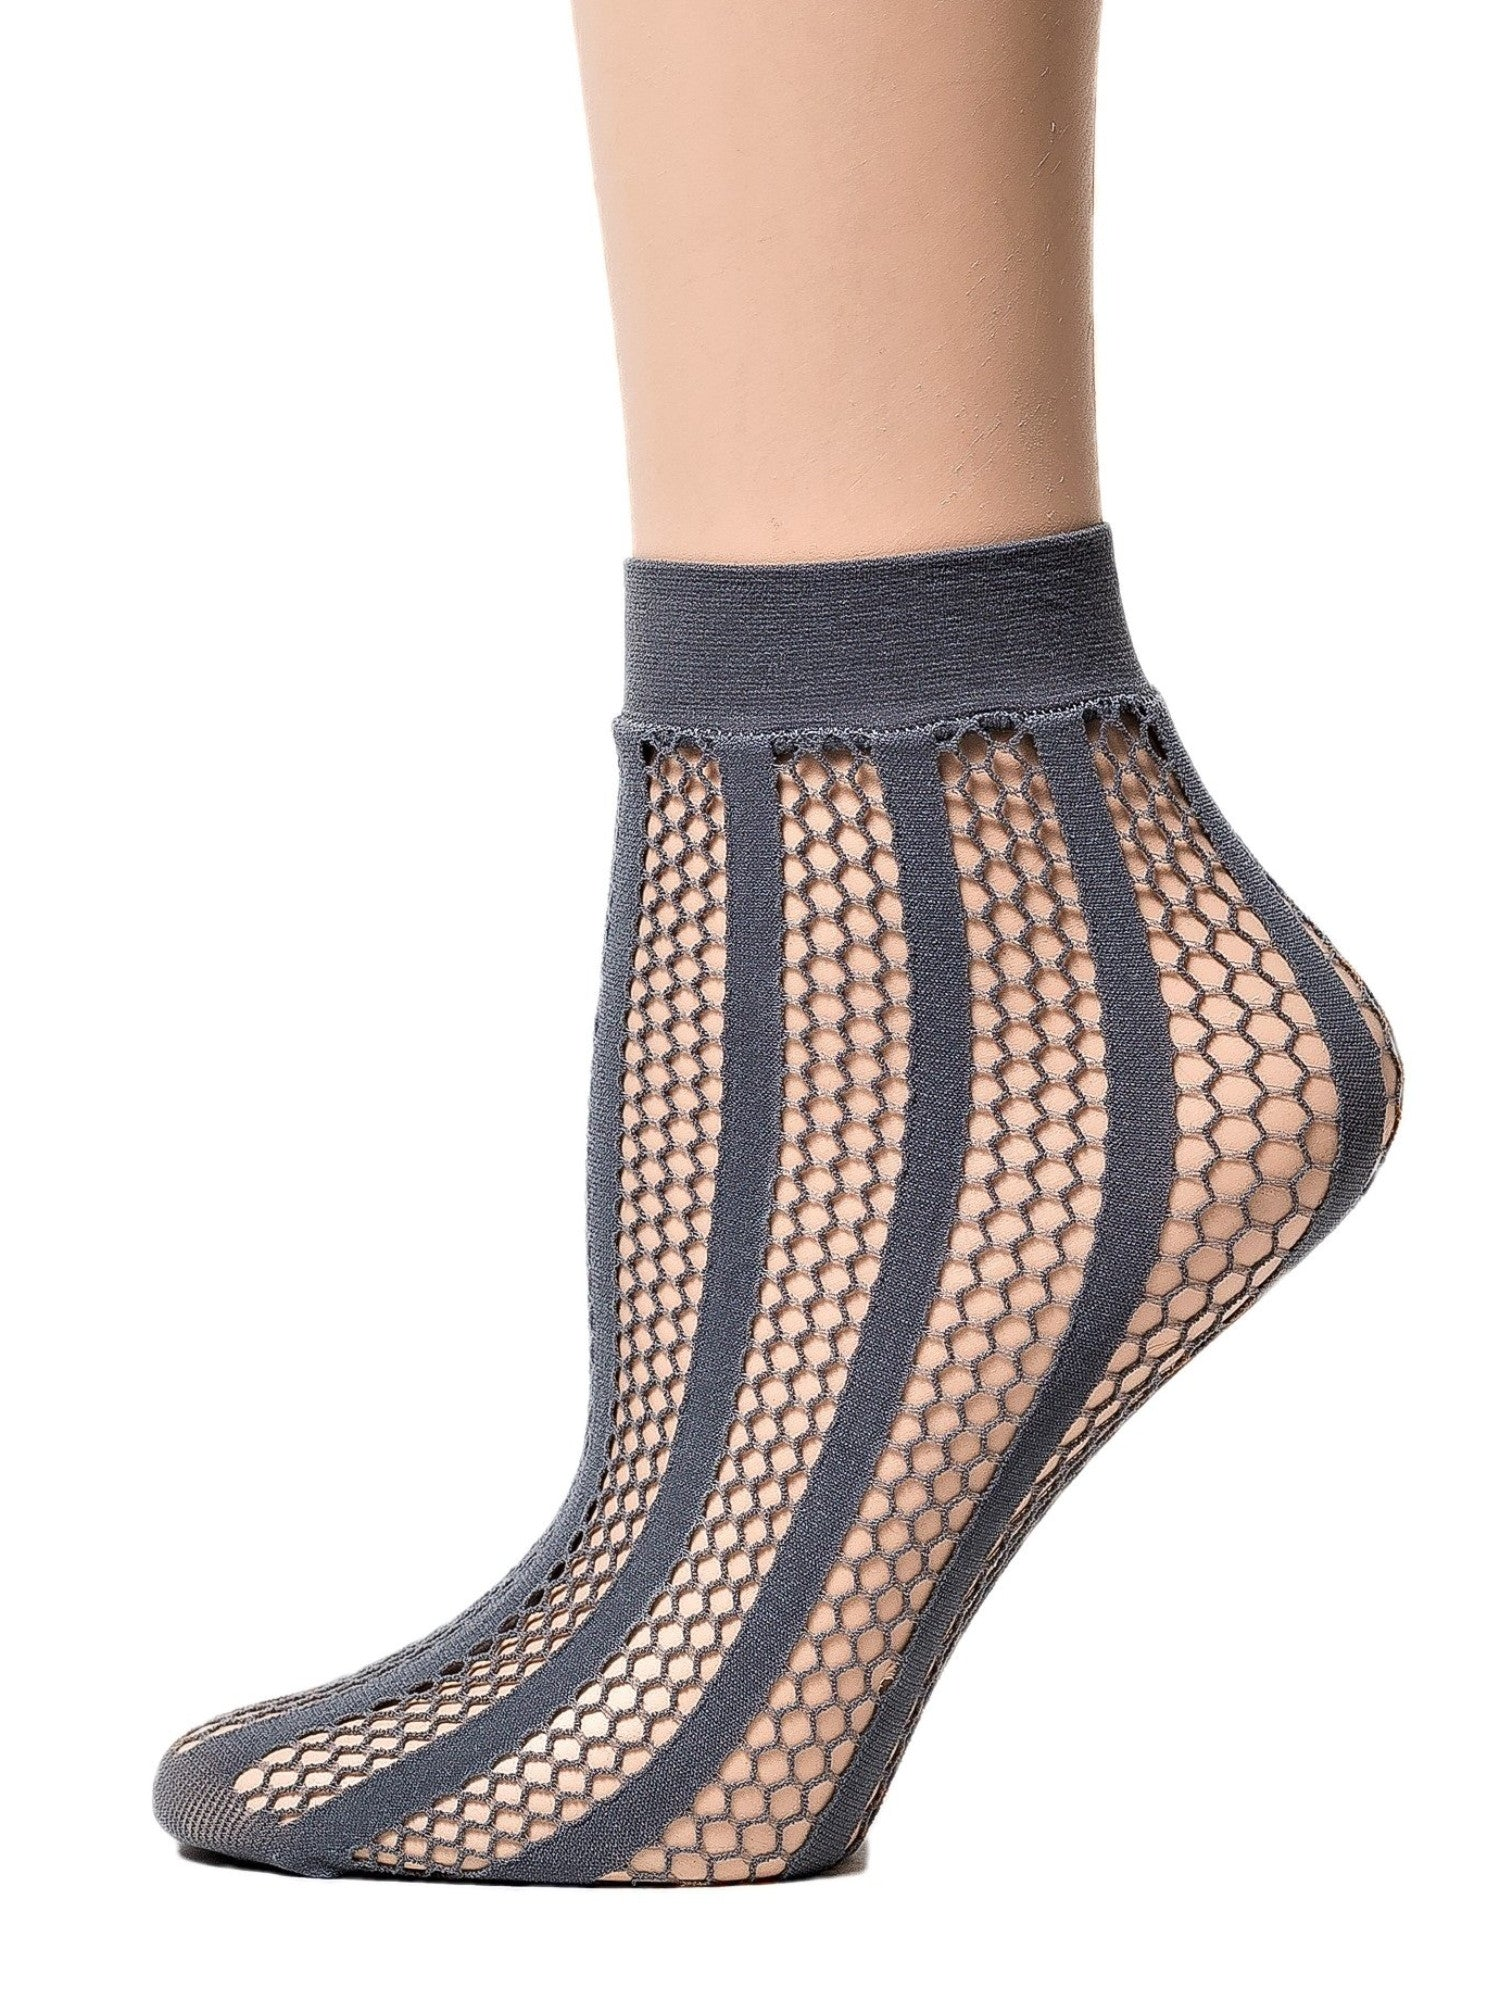 Striped Grey Mesh Socks - Global Trendz Fashion®